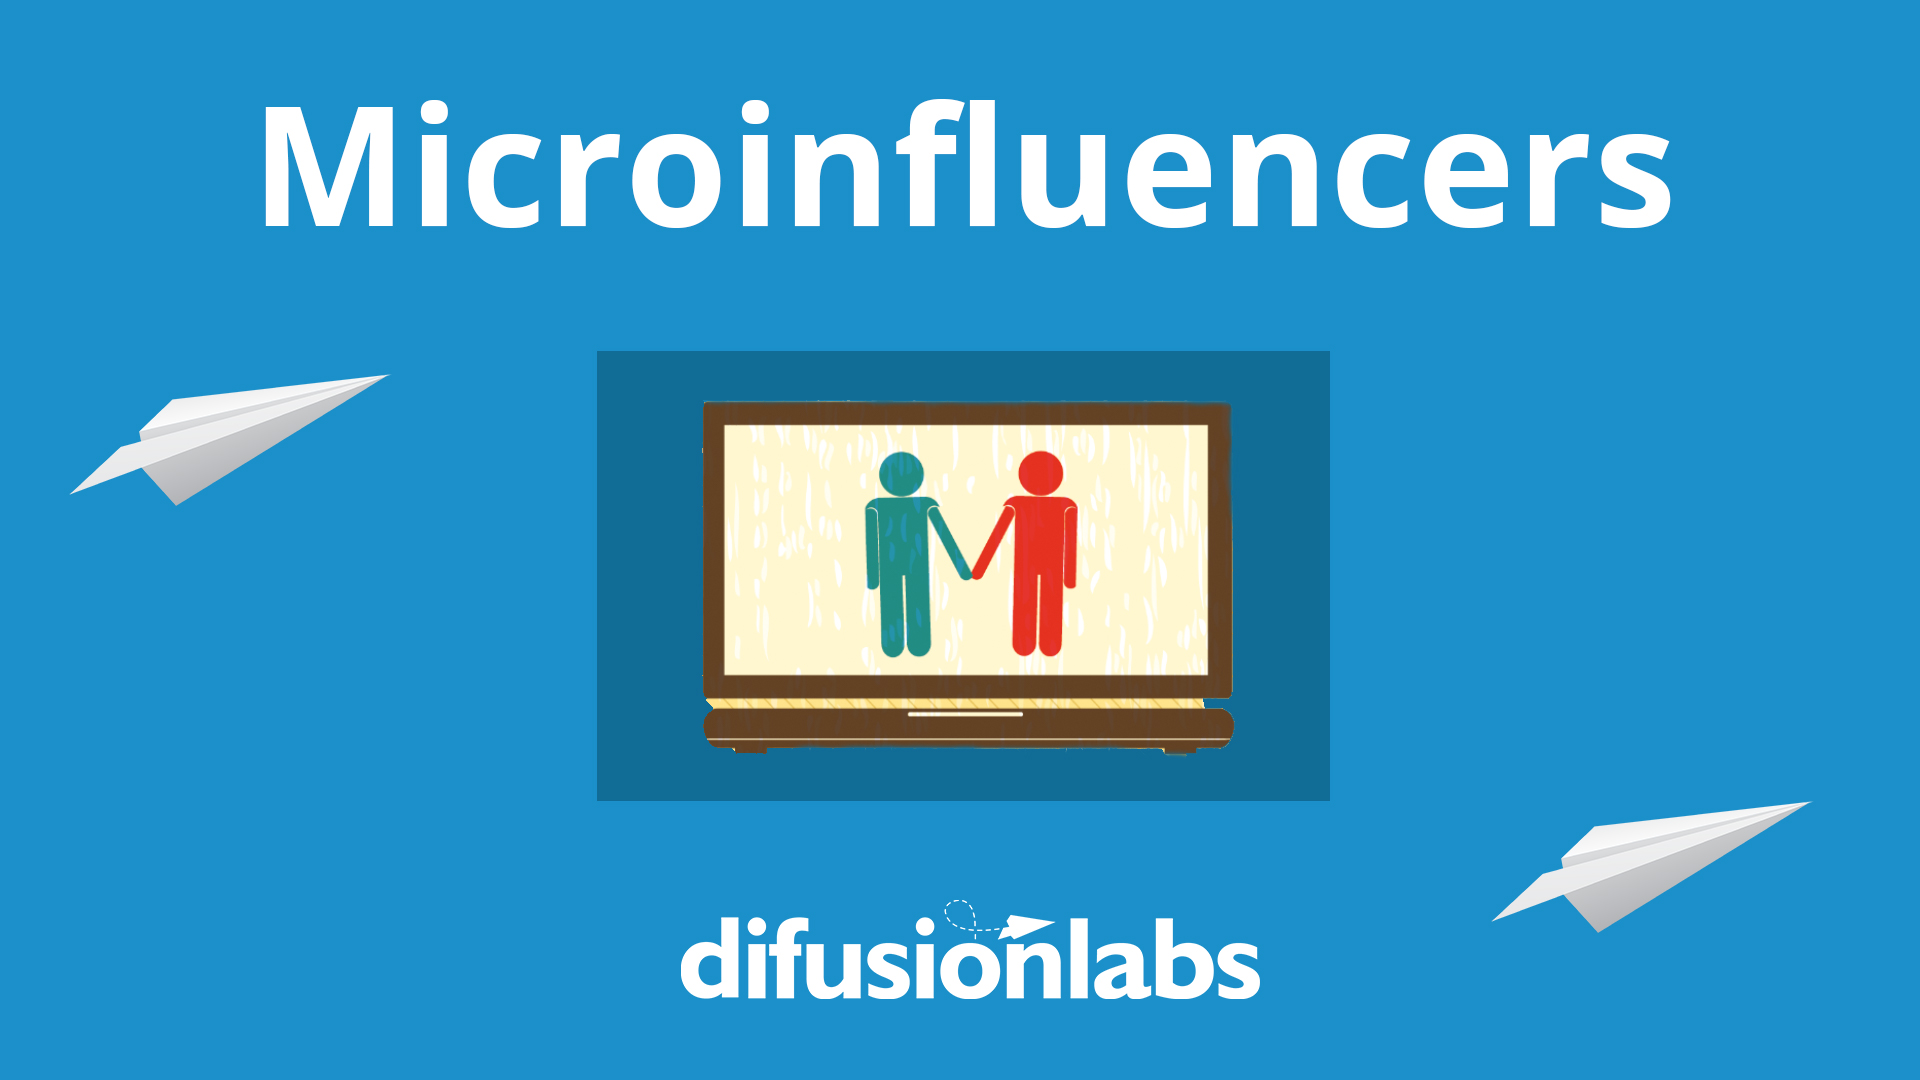 Microinfluencers